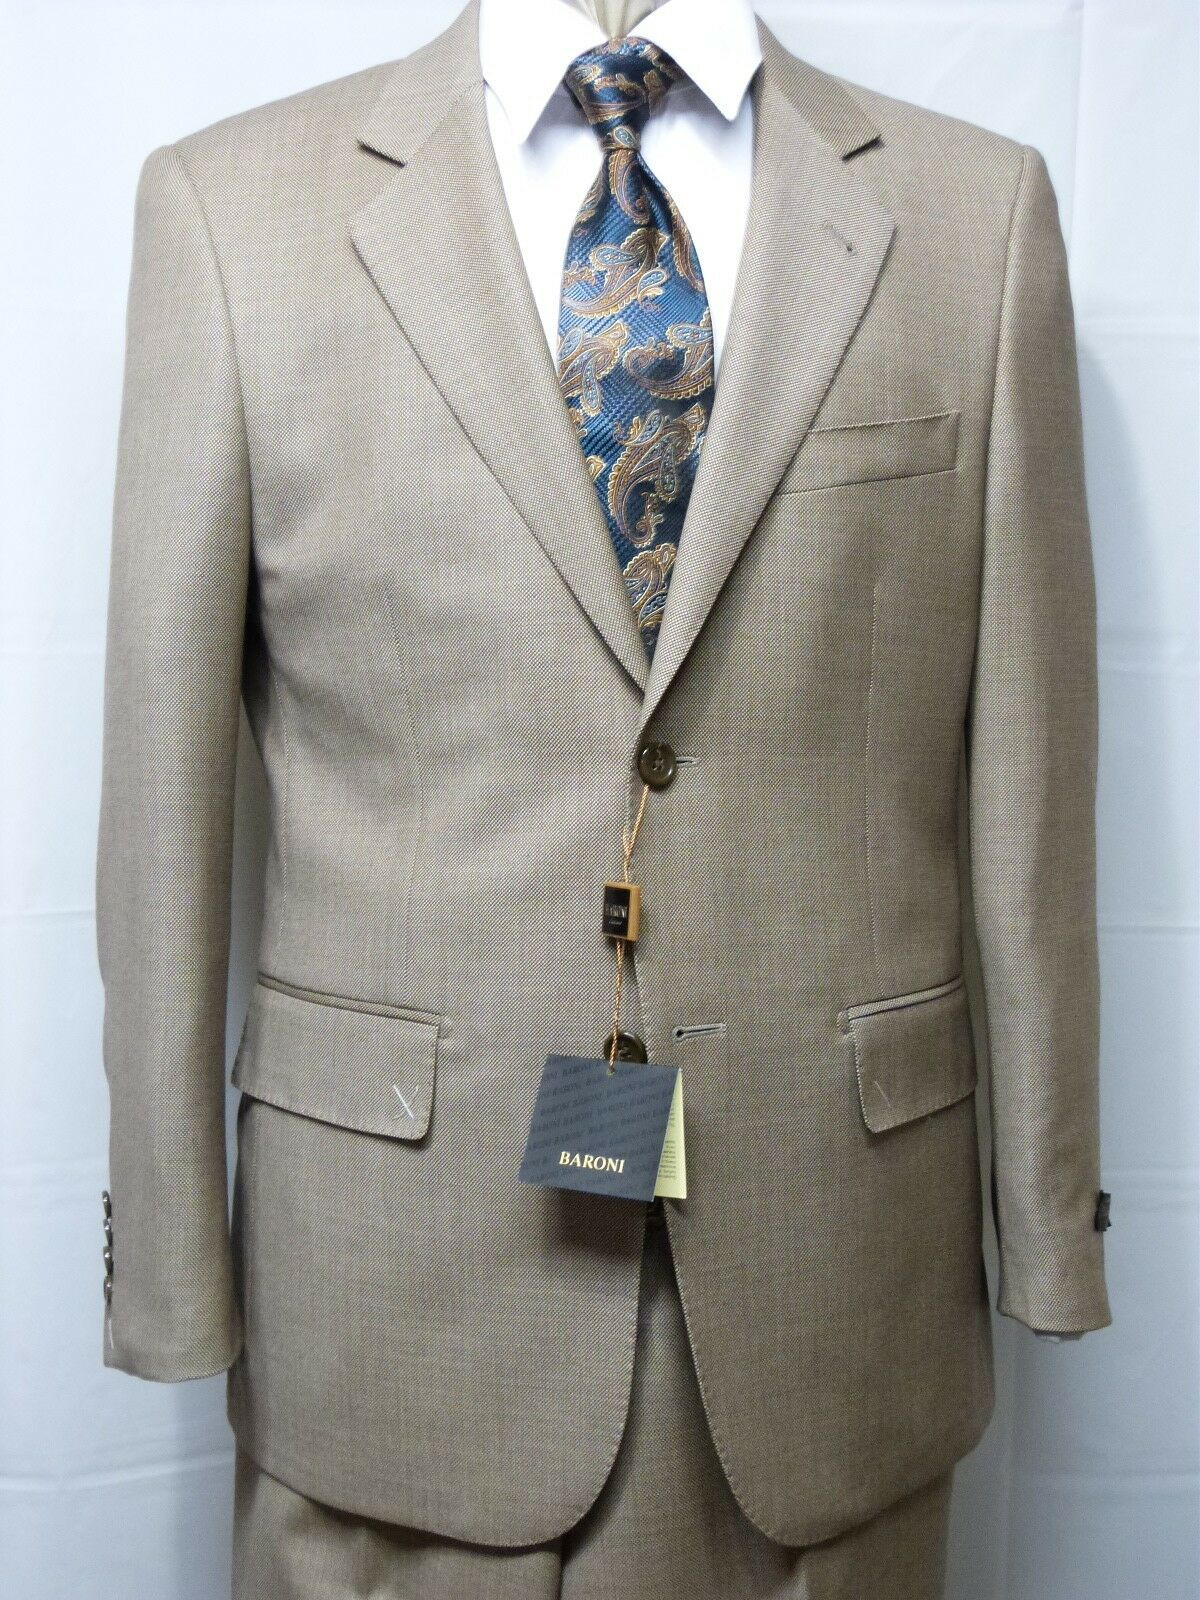 Baroni Suit, Two Button,100% Wool, Tan, NWT